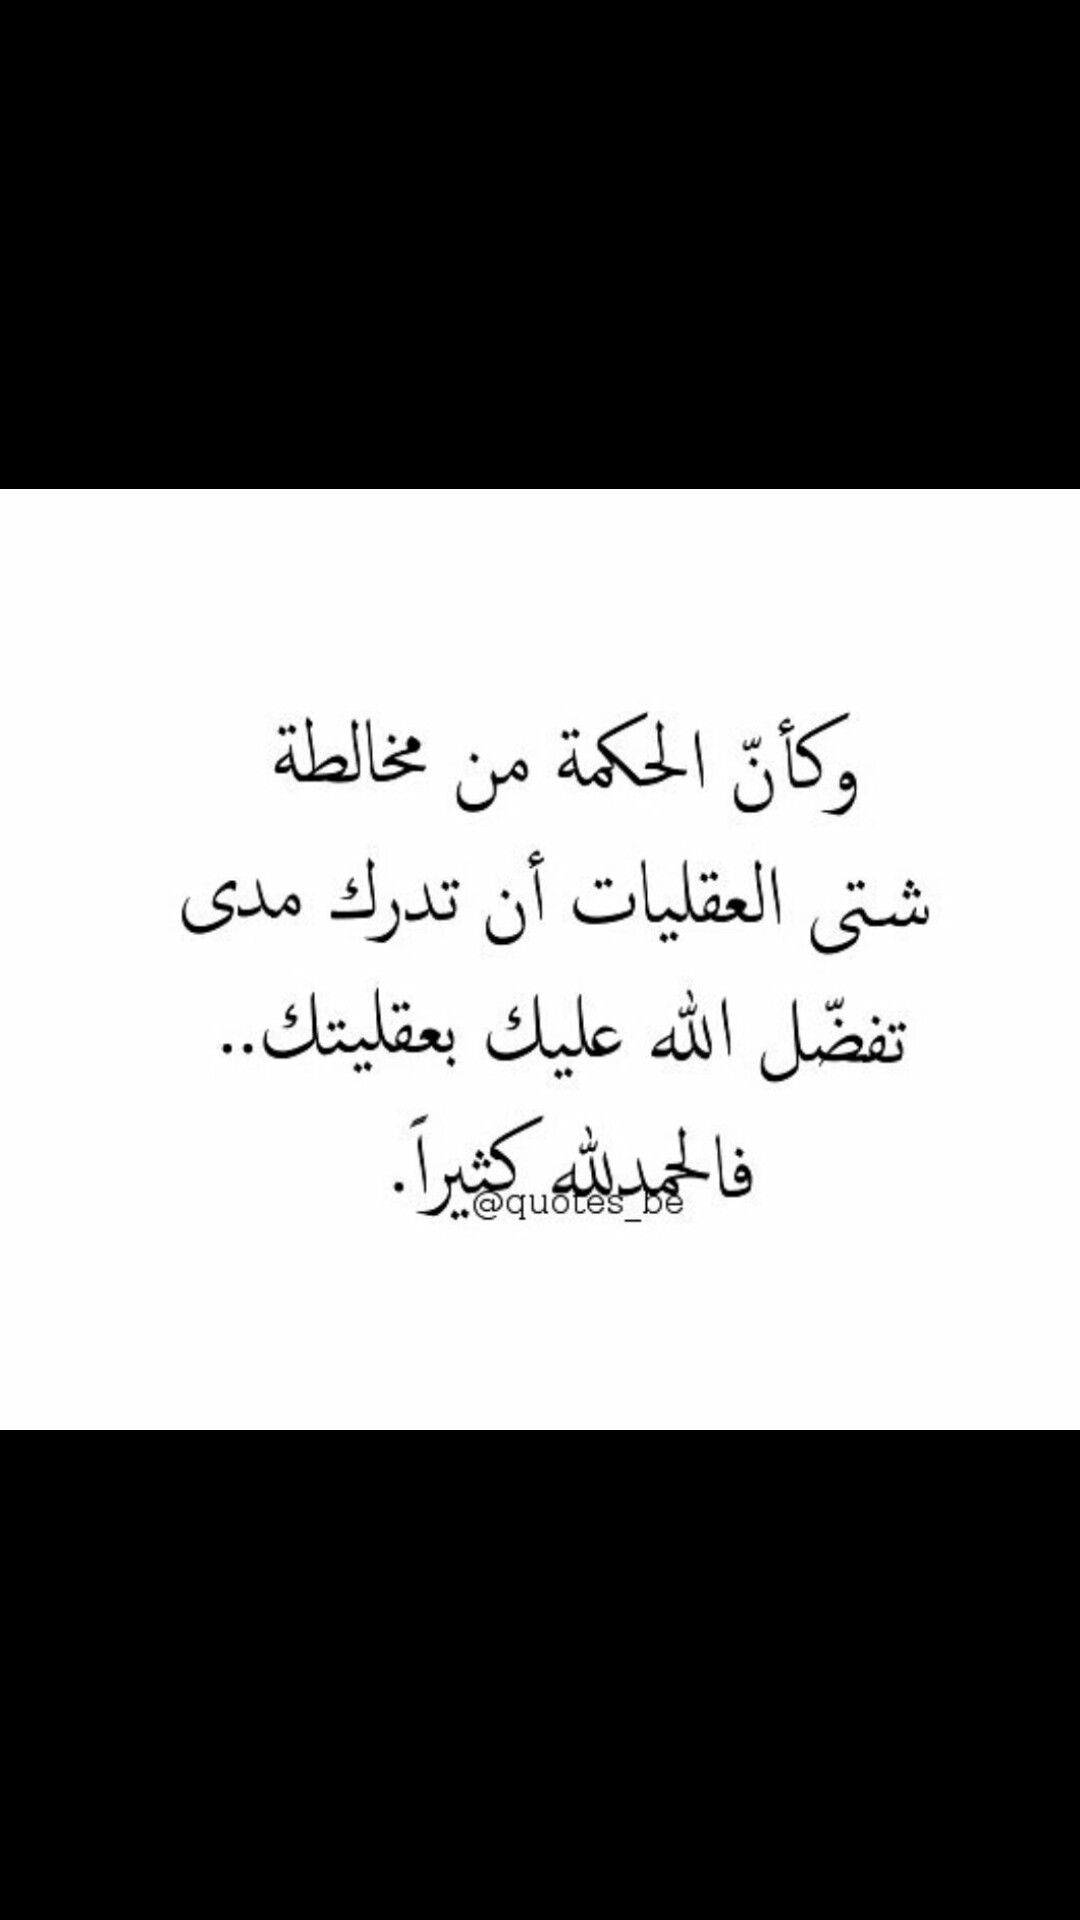 Life Quotes In Arabic With English Translation Pinamal Fahad On كلمات  Pinterest  Arabic Words Arabic